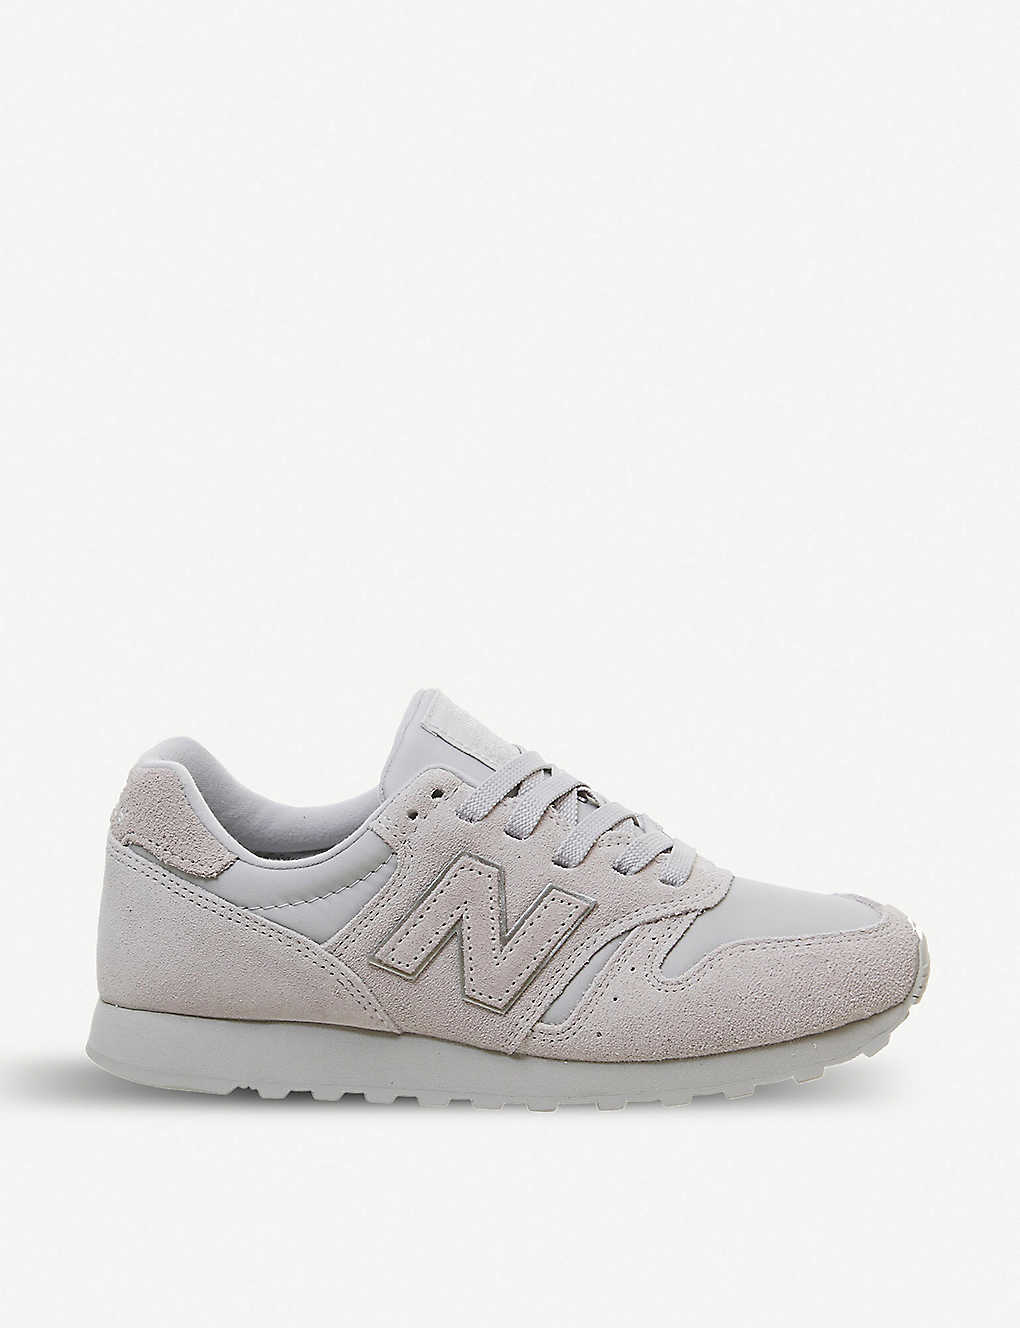 nouveaux styles 42286 4d246 Wl373 suede and mesh trainers